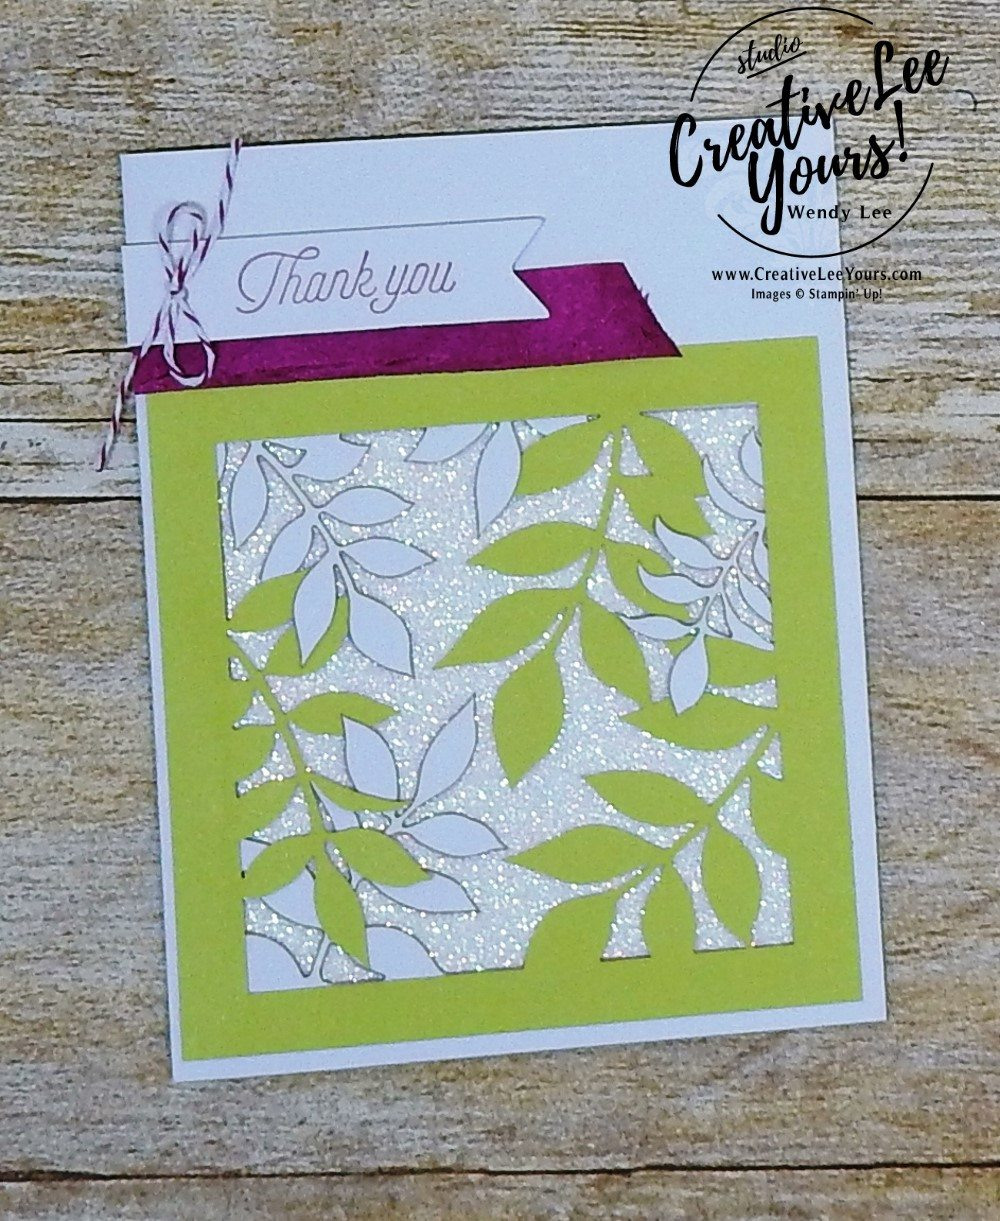 Thank You Leaves by Wendy Lee,December 2017 Paper Pumpkin Flora and Flutter Kit,stampin up, handmade cards, rubber stamps, stamping, kit, subscription, floral cards